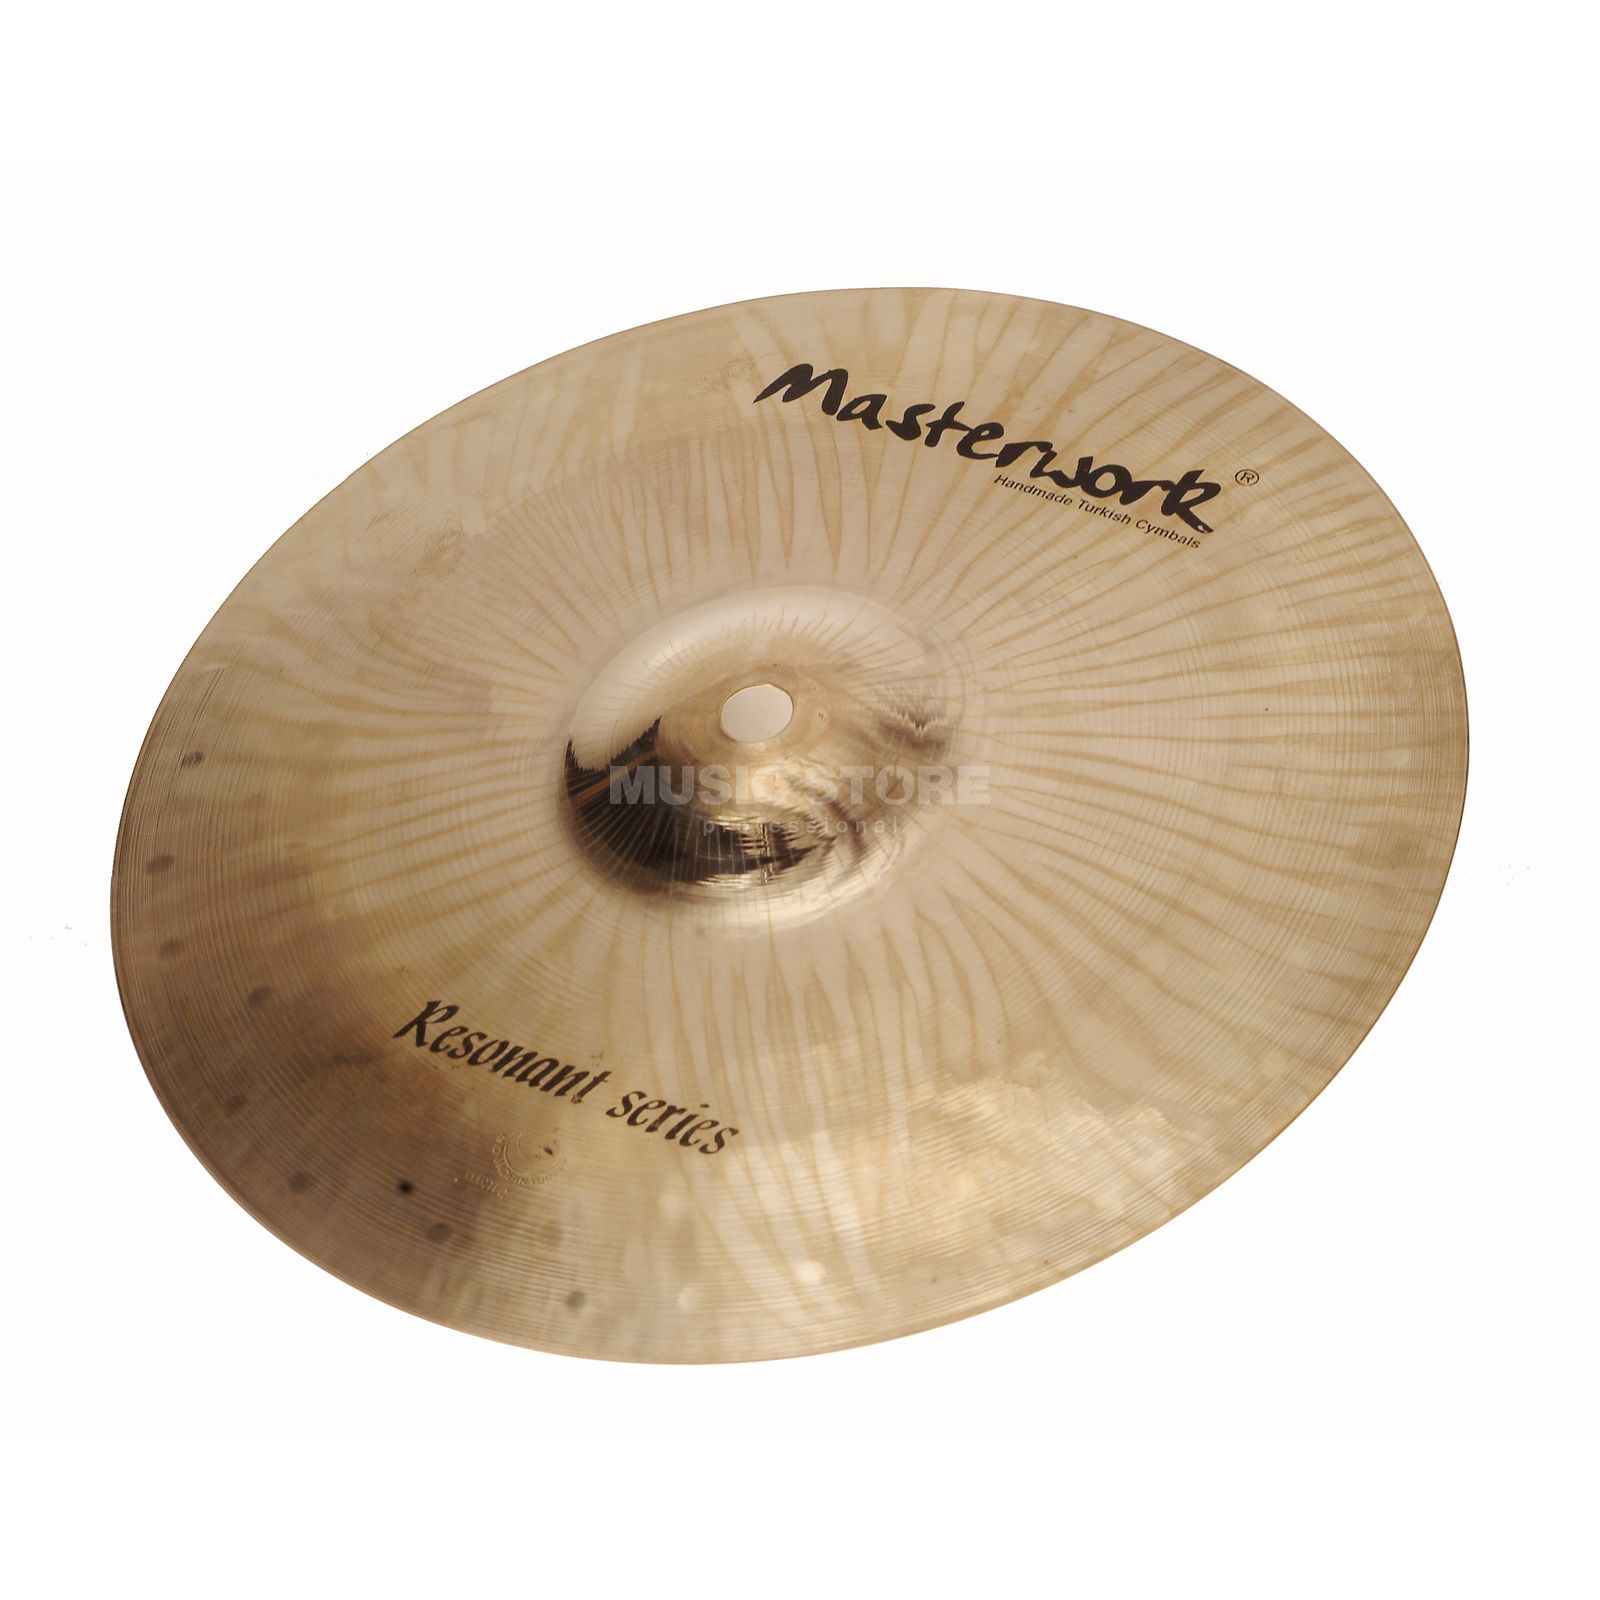 "Masterwork Resonant Splash 6"" Brilliant Finish Immagine prodotto"